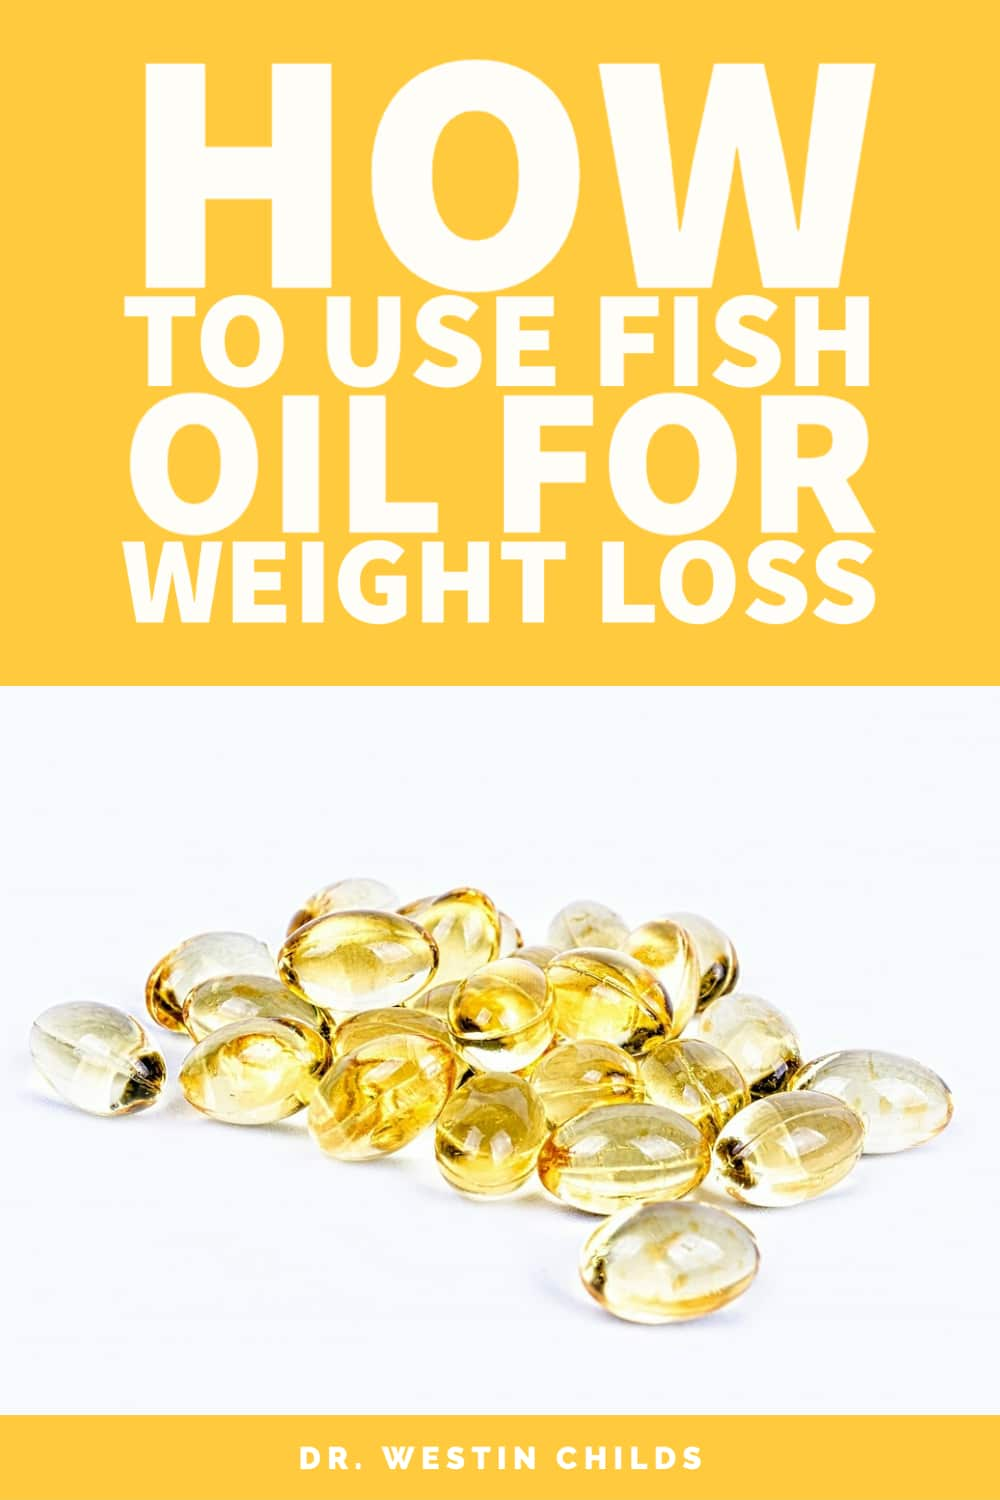 the right way to use fish oil for weight loss and fat loss